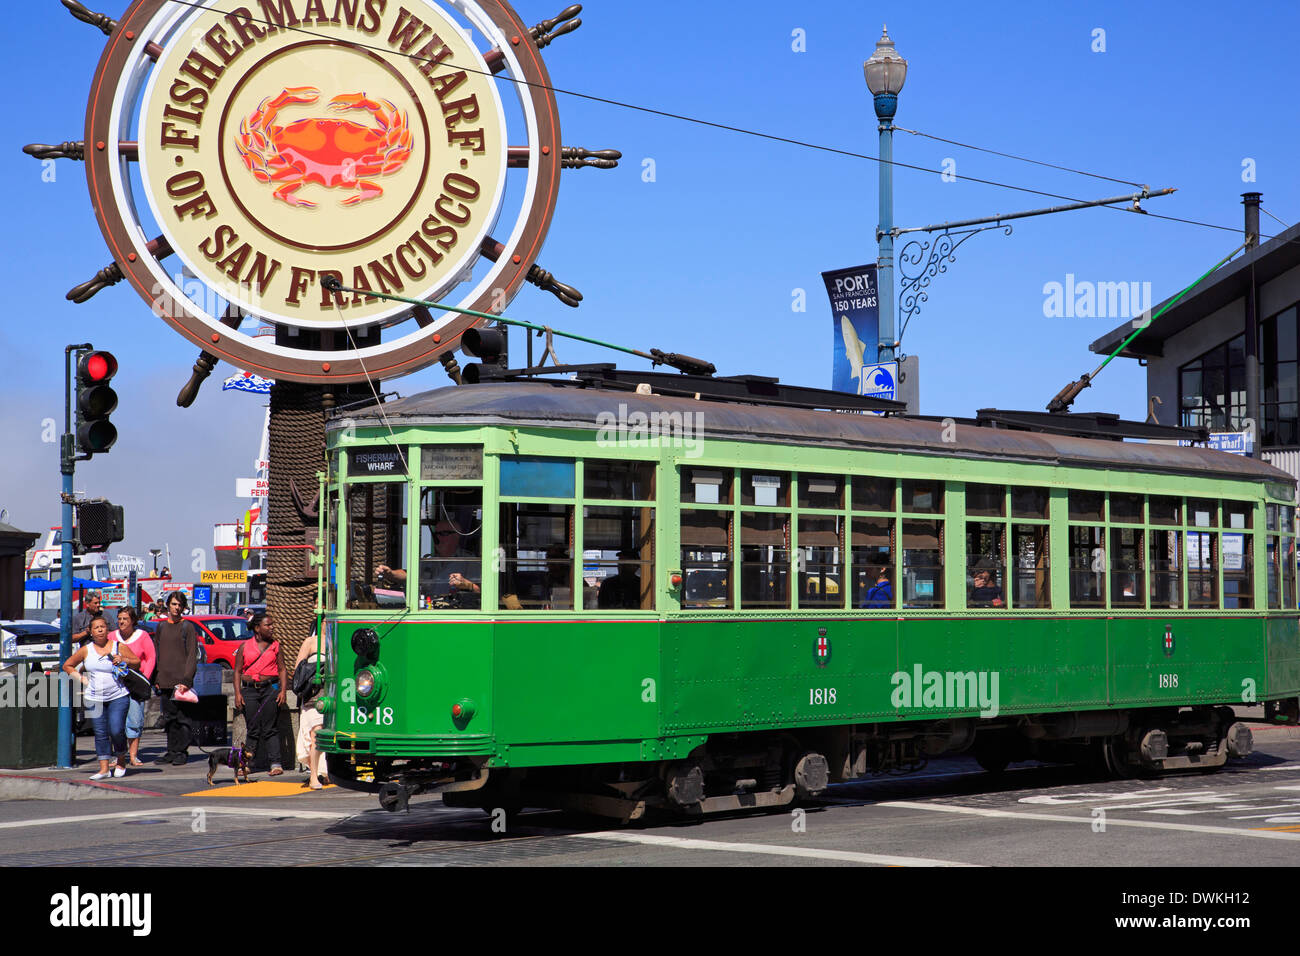 Trolley in Fisherman's Wharf, San Francisco, California, United States of America, North America - Stock Image